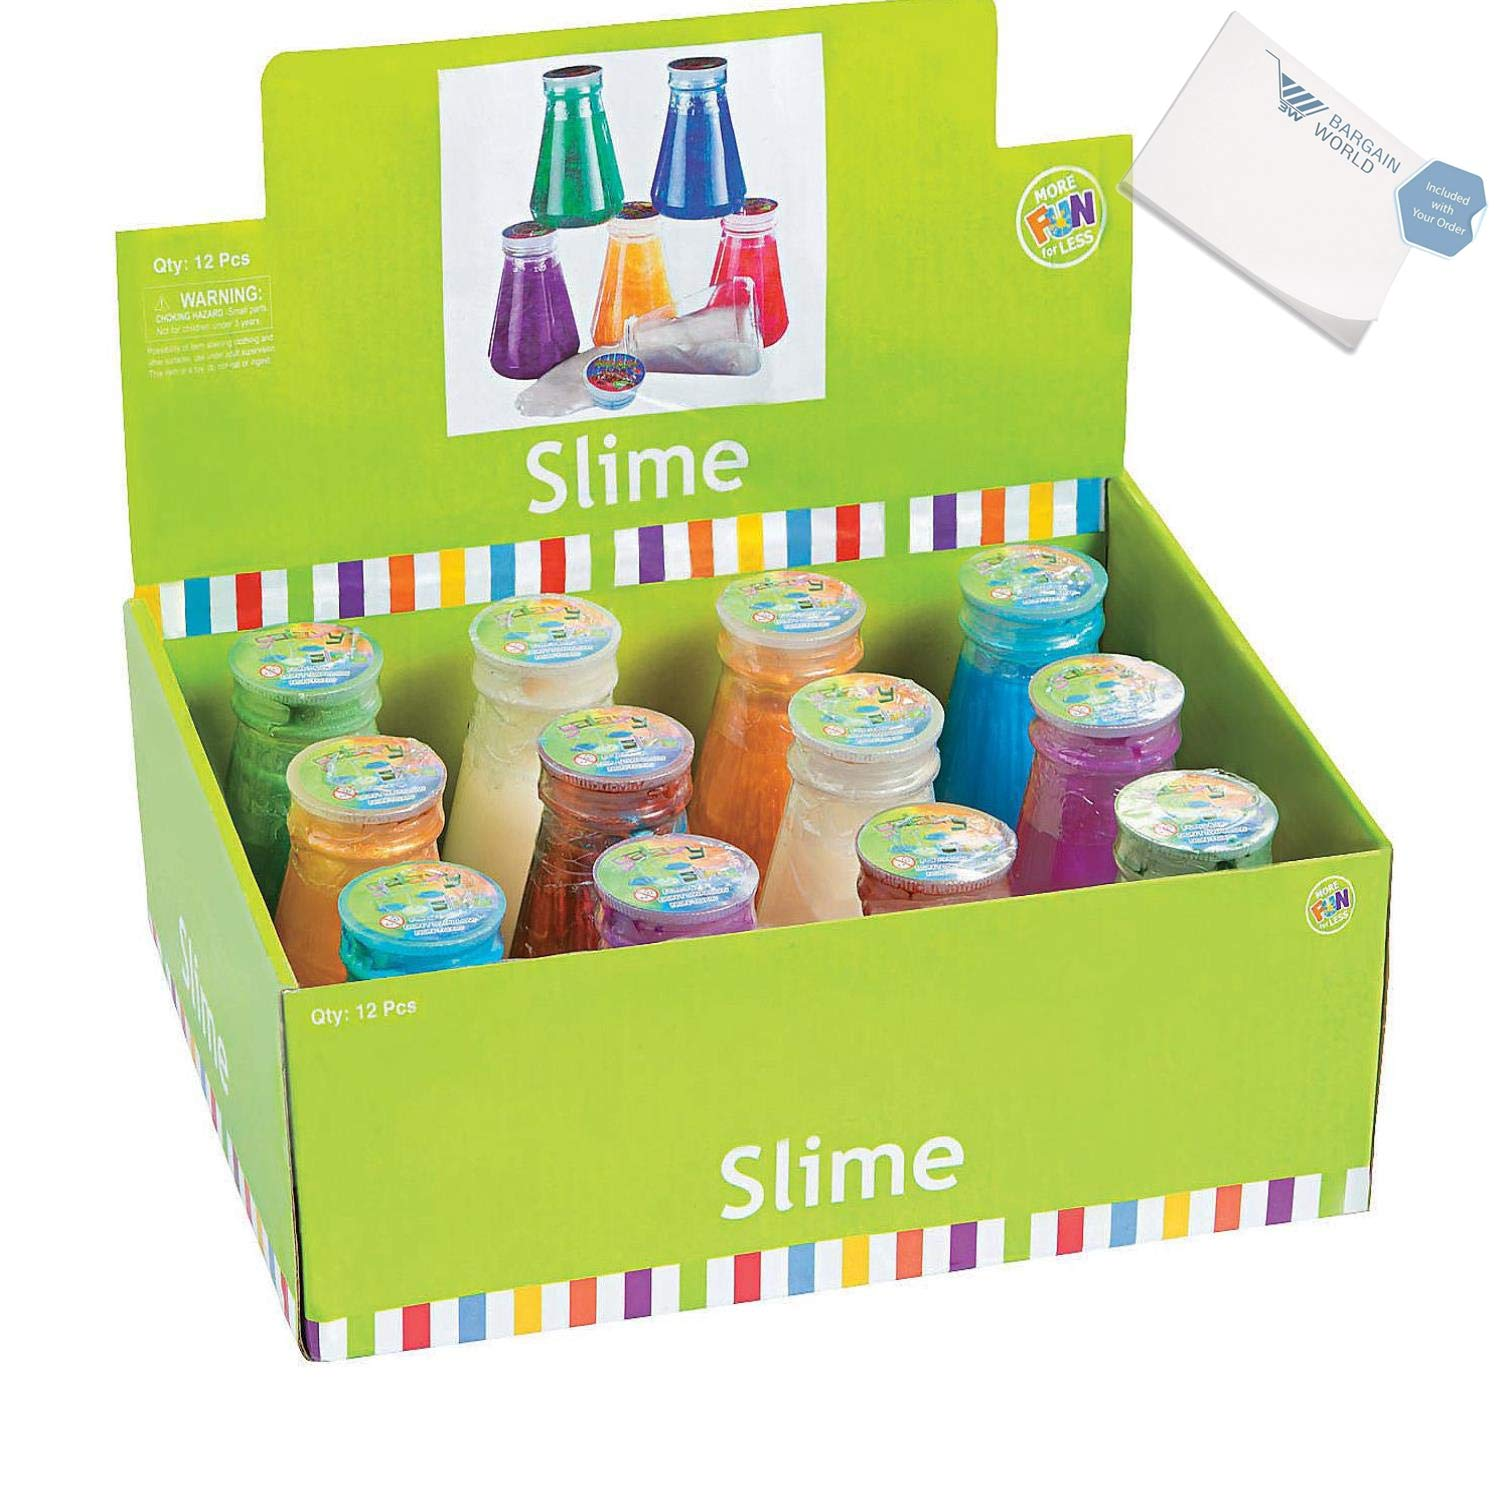 Bargain World Metallic Slime in Laboratory Flasks (With Sticky Notes) by Bargain World (Image #1)